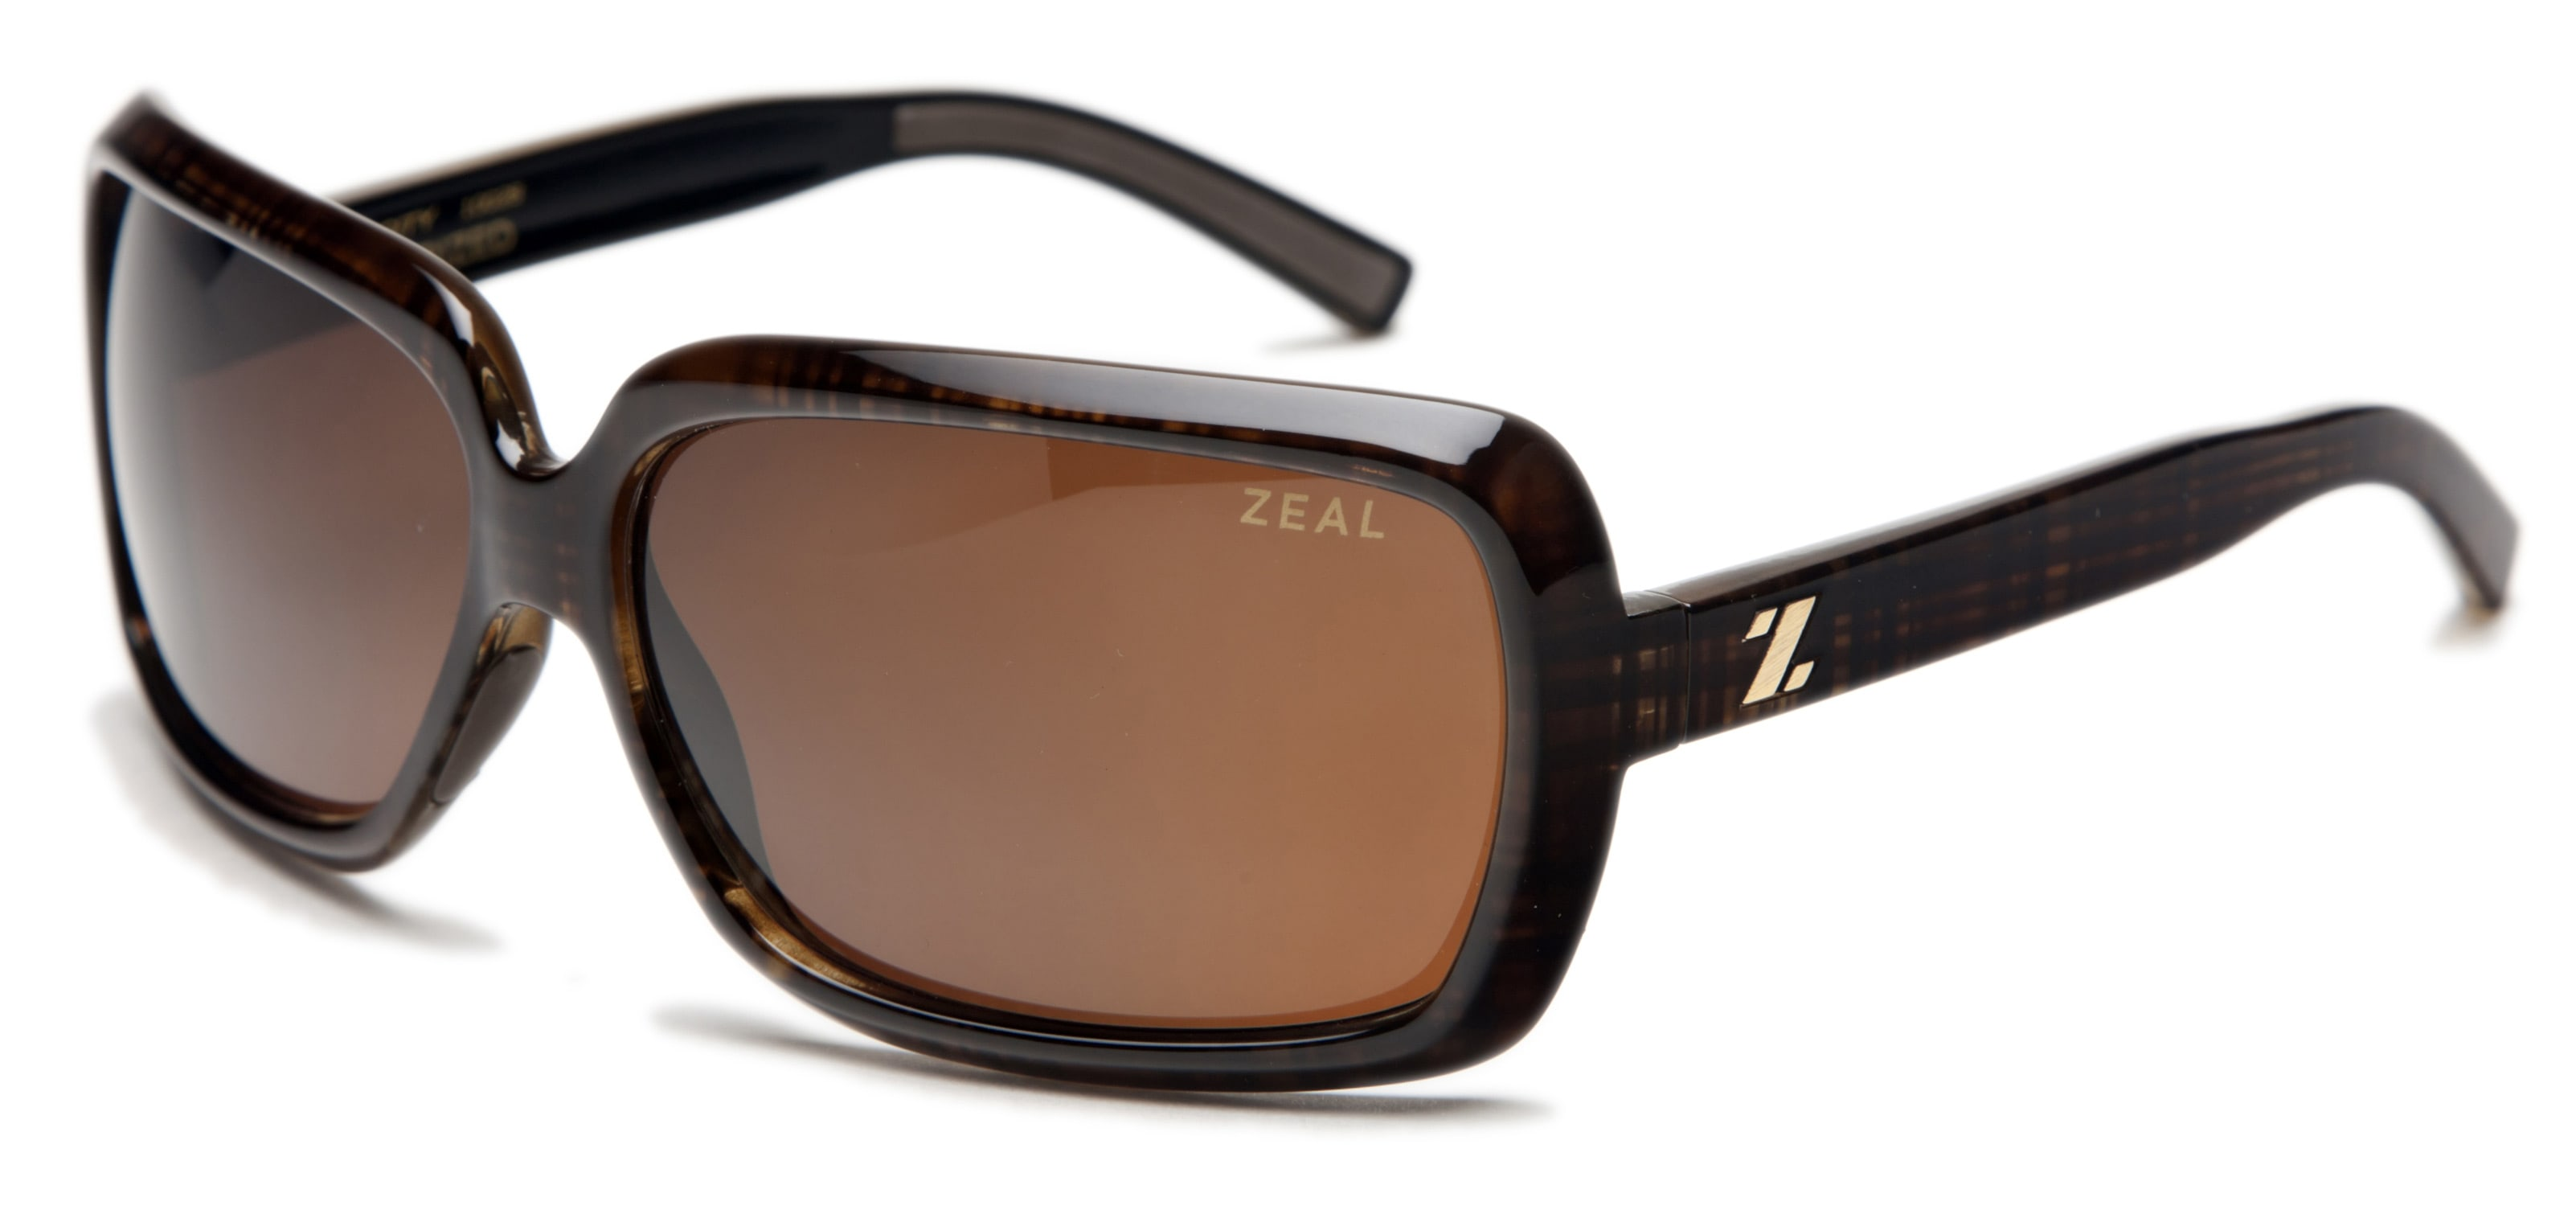 Zeal Felicity Sunglasses Brown Plaid/Copper Polarized Lens - Women's